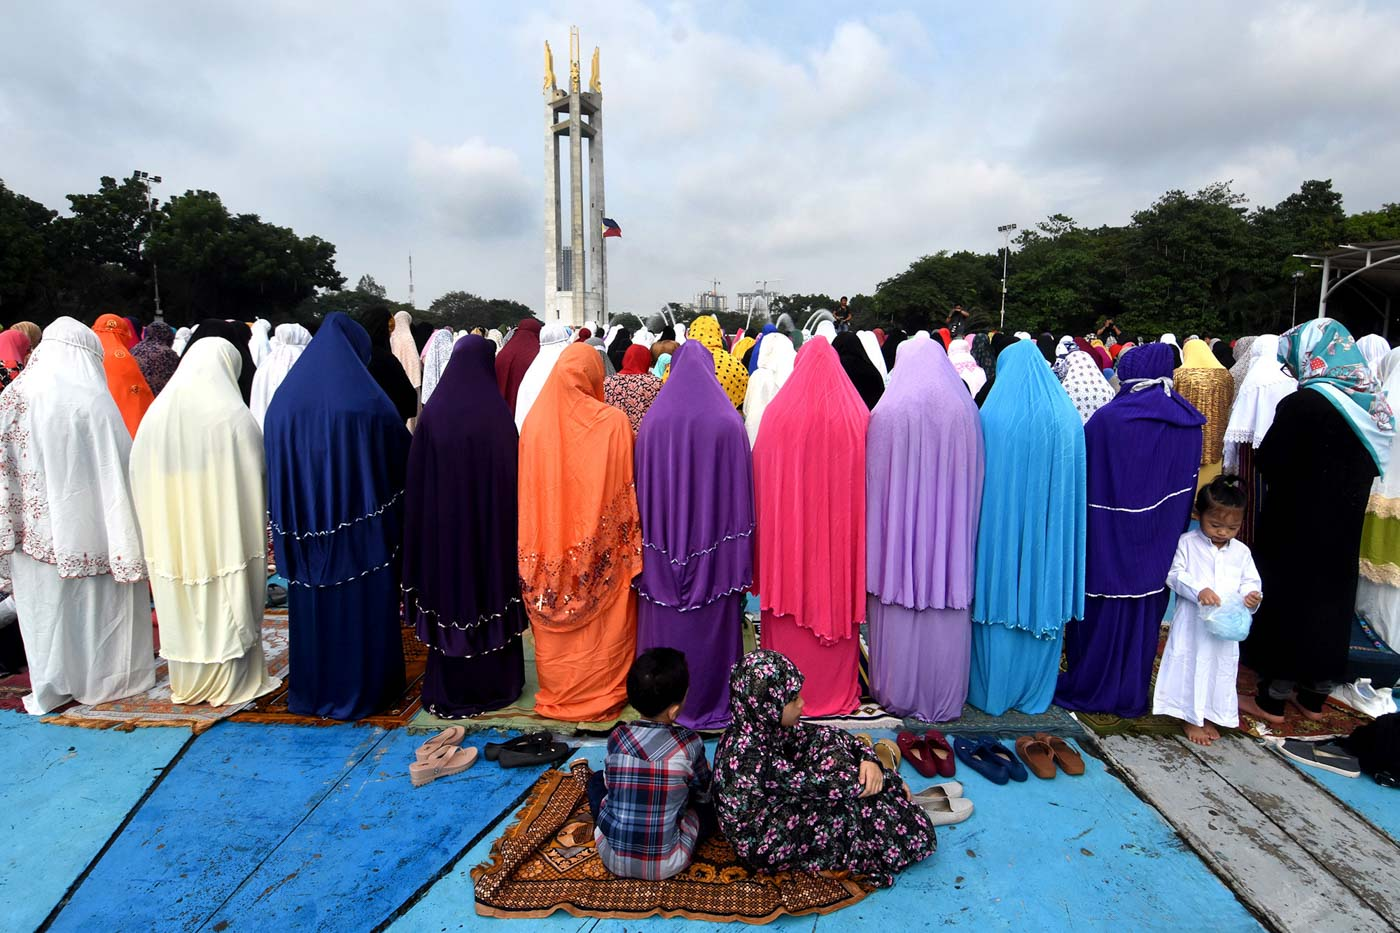 LANDMARK. Muslim women stand in prayer during the Eid'l Adha at the Quezon Memorial Cirlce in Quezon City on August 21, 2018. Photo by Angie de Silva/Rappler